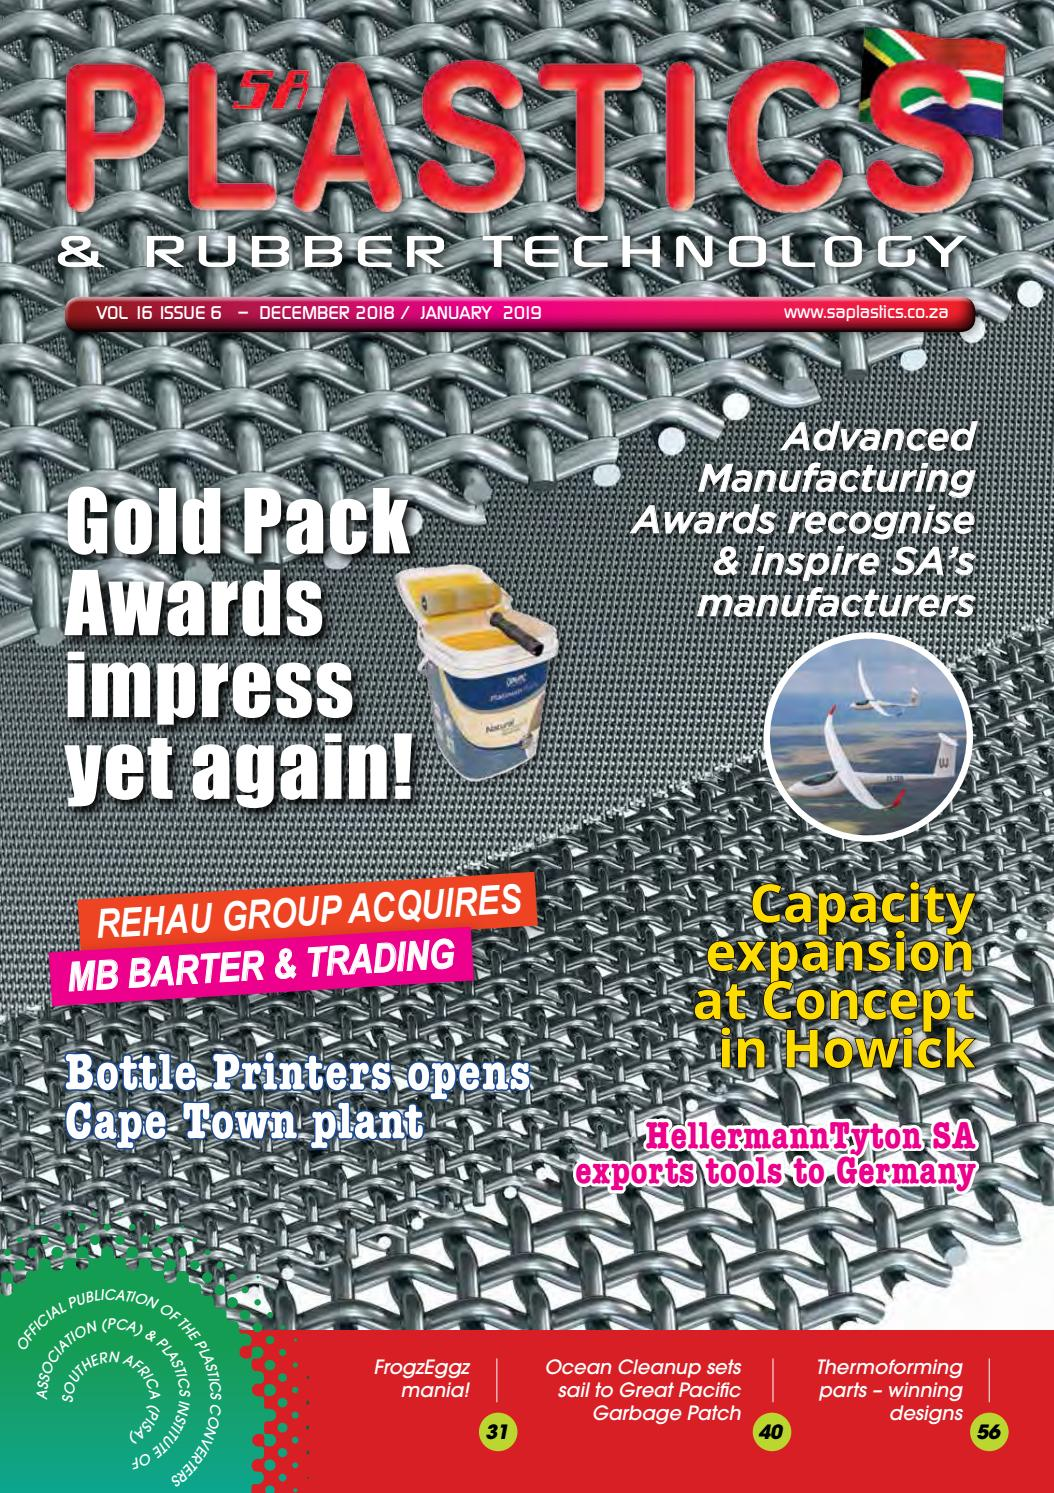 6a8da889b20c SA Plastics & Rubber Technology by SA Plastics, Composites & Rubber ...